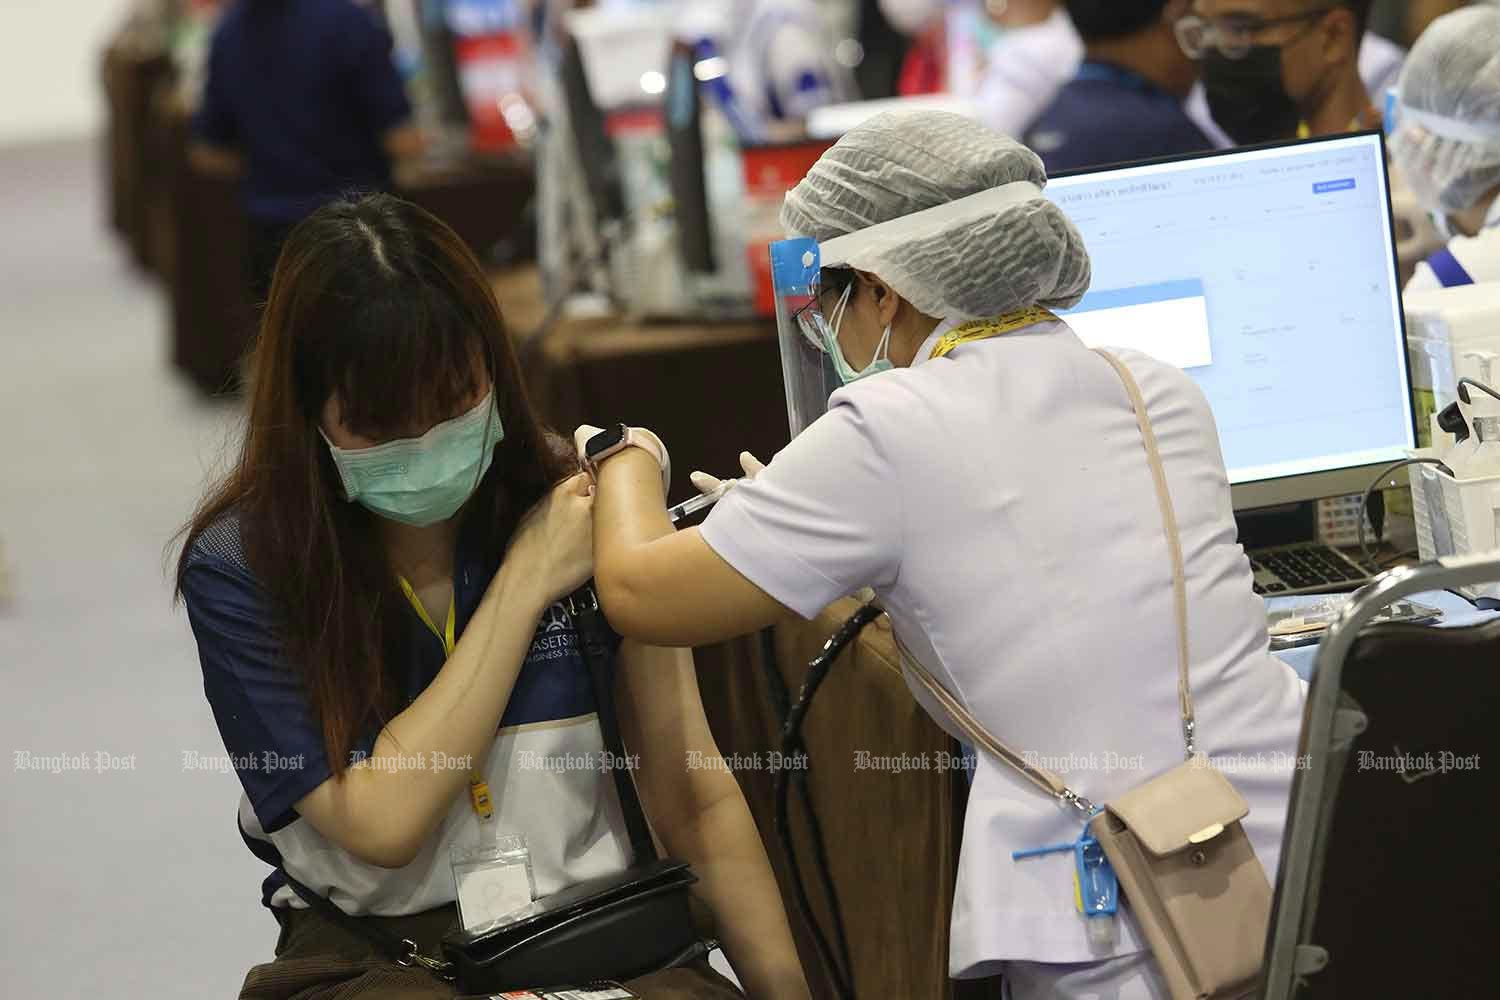 The Delta variant is responsible for 70% of people in Bangkok falling sick with Covid-19, says a virologist. (Bangkok Post photo)